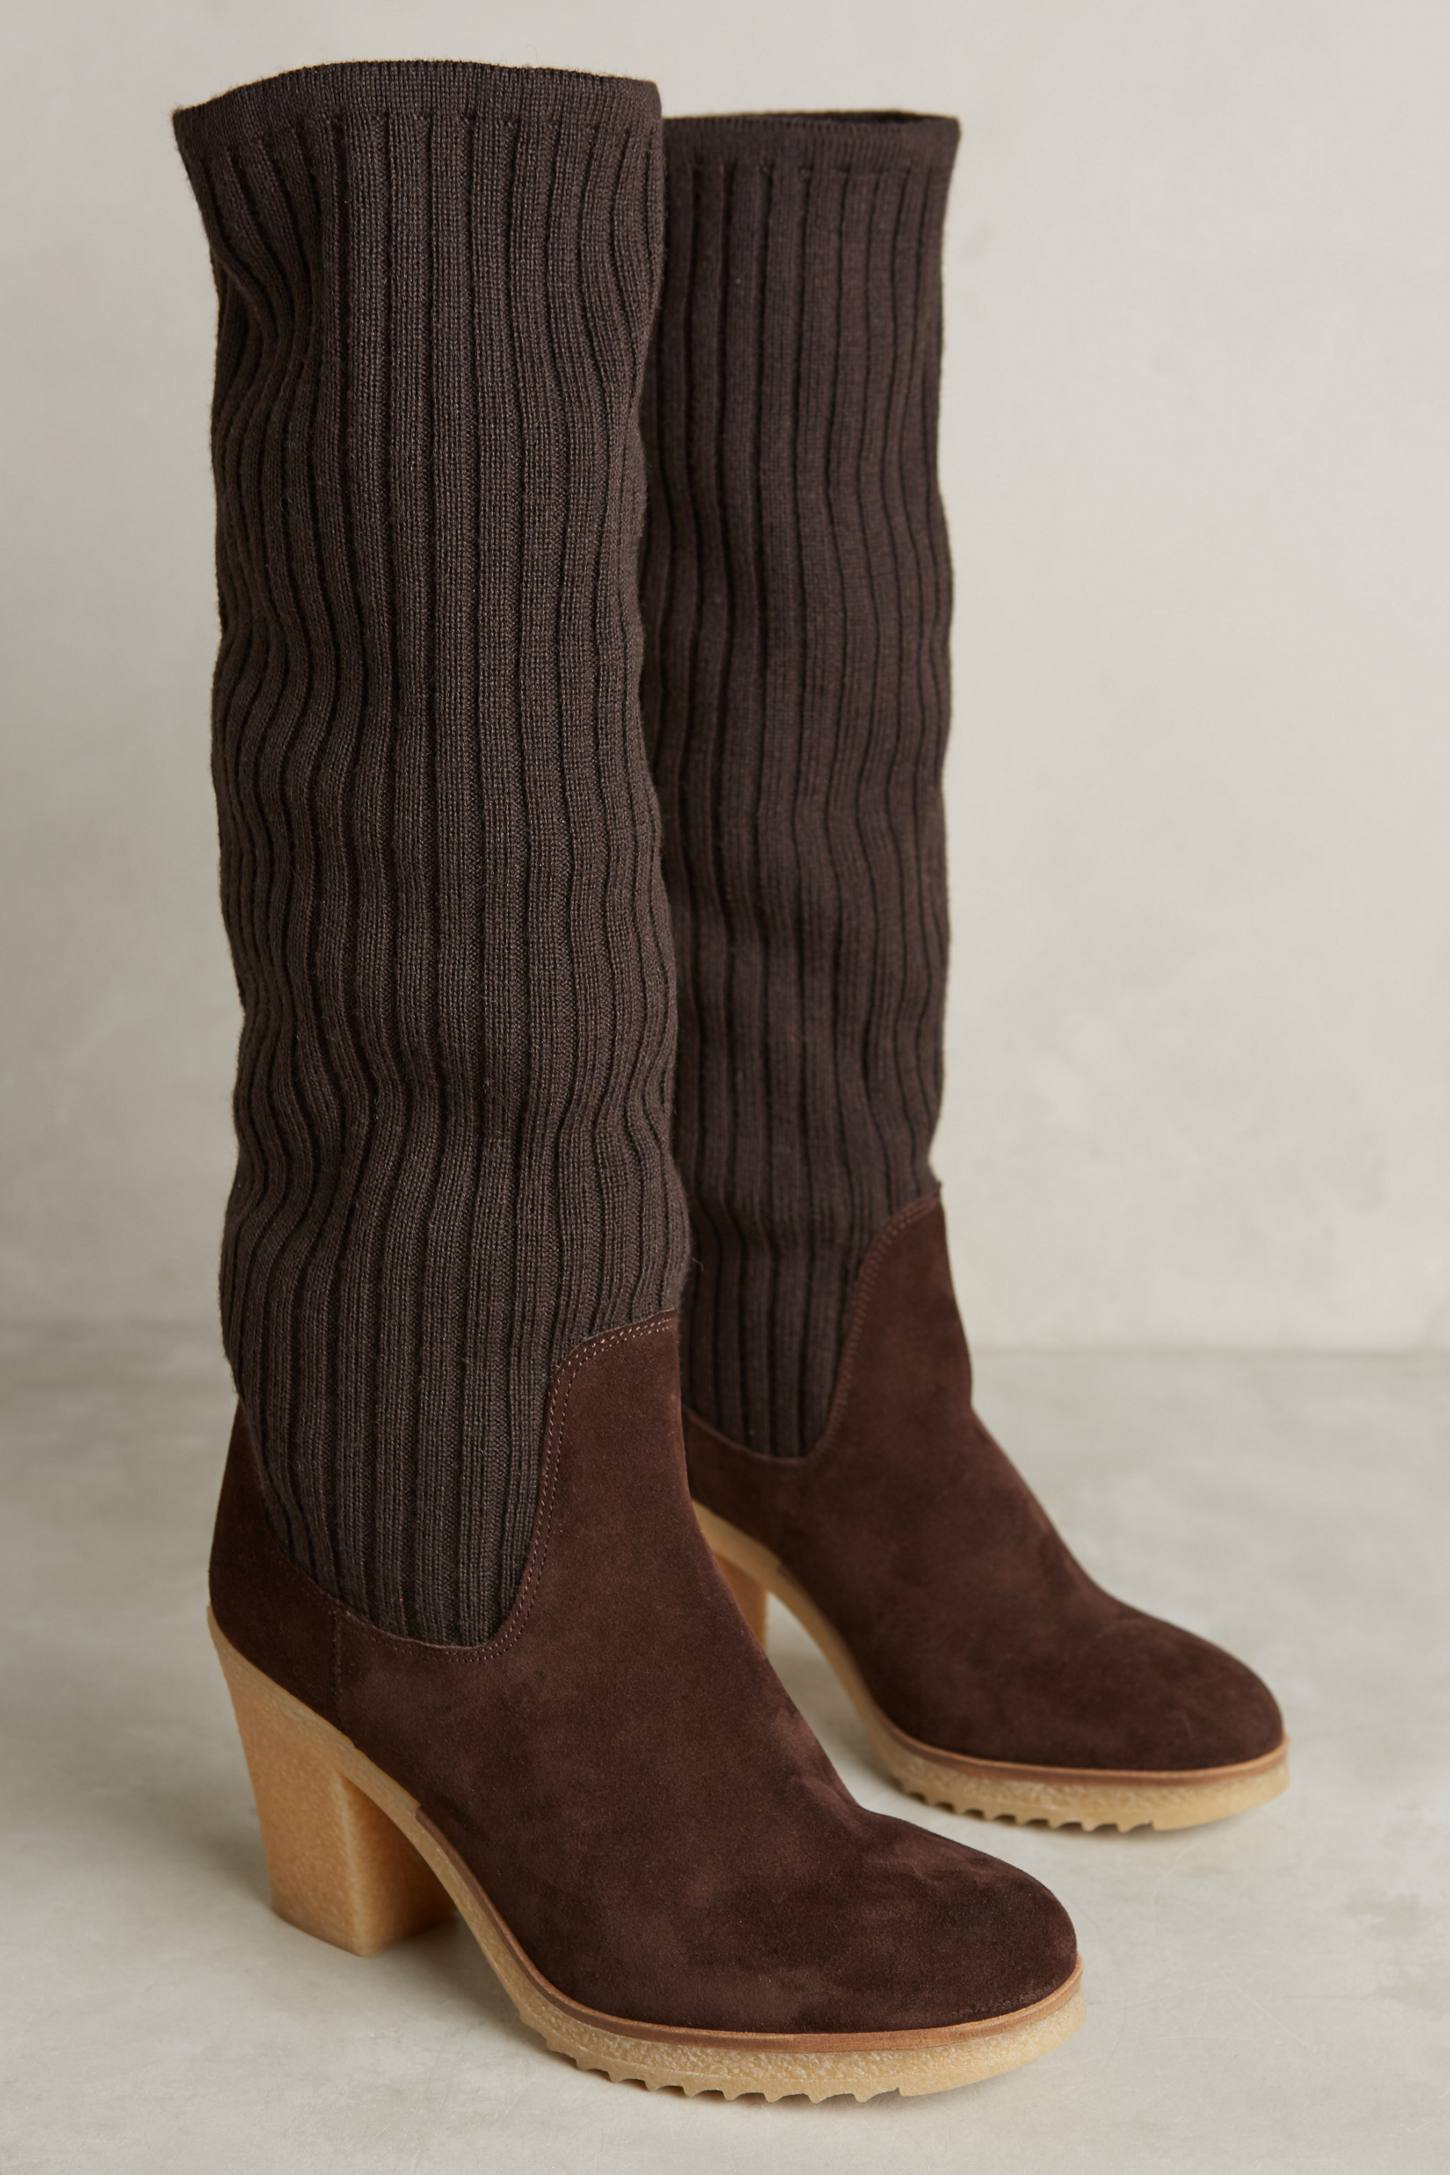 Miss Albright Sweaterknit Boots